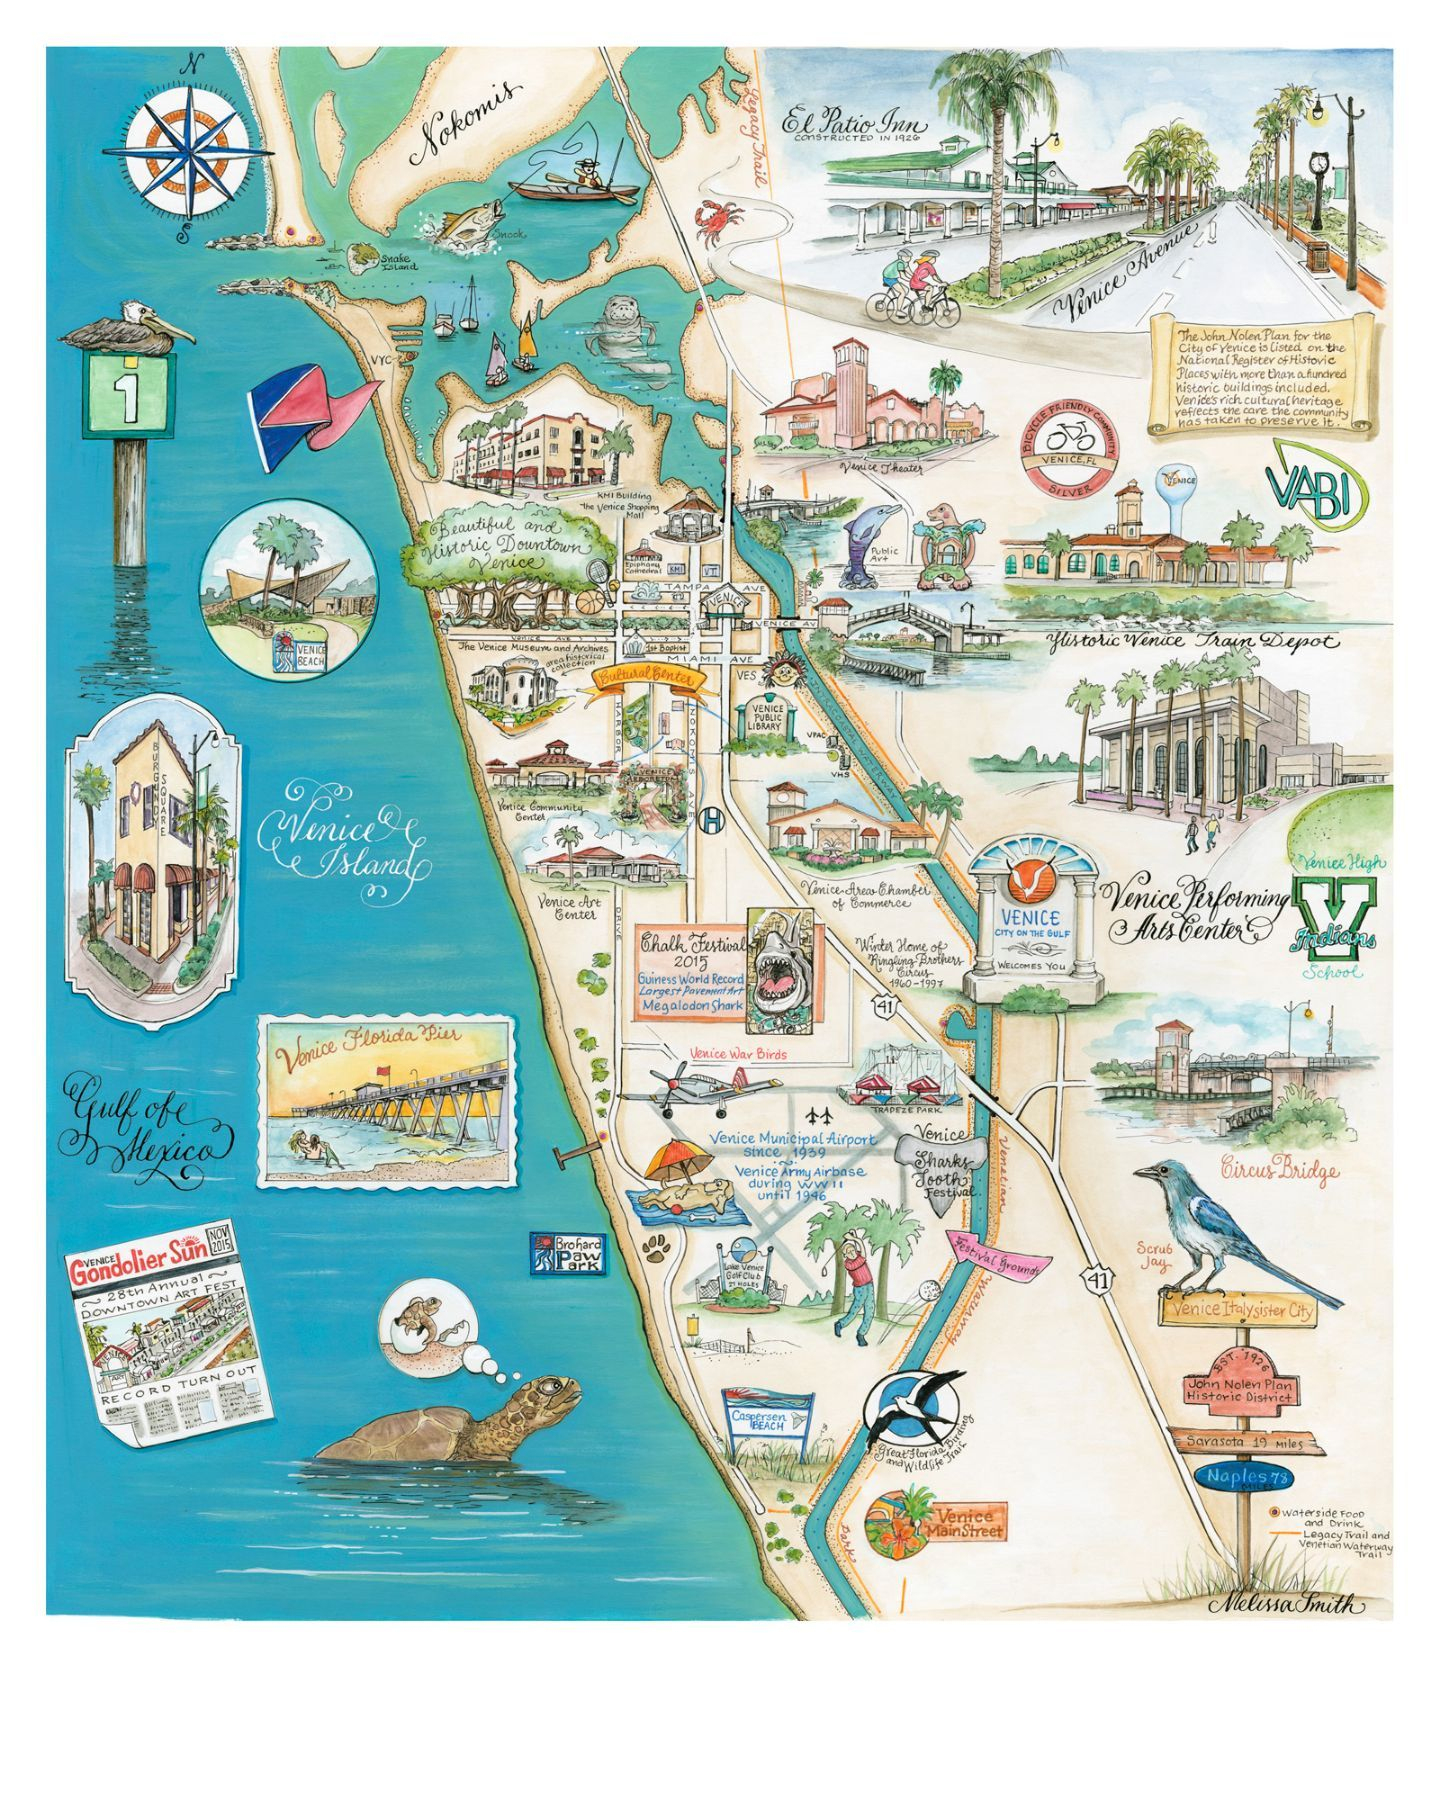 Venice, Florida Map - This Map Is One Of The Prettiest Maps I Have - Map Of Florida Showing Venice Beach